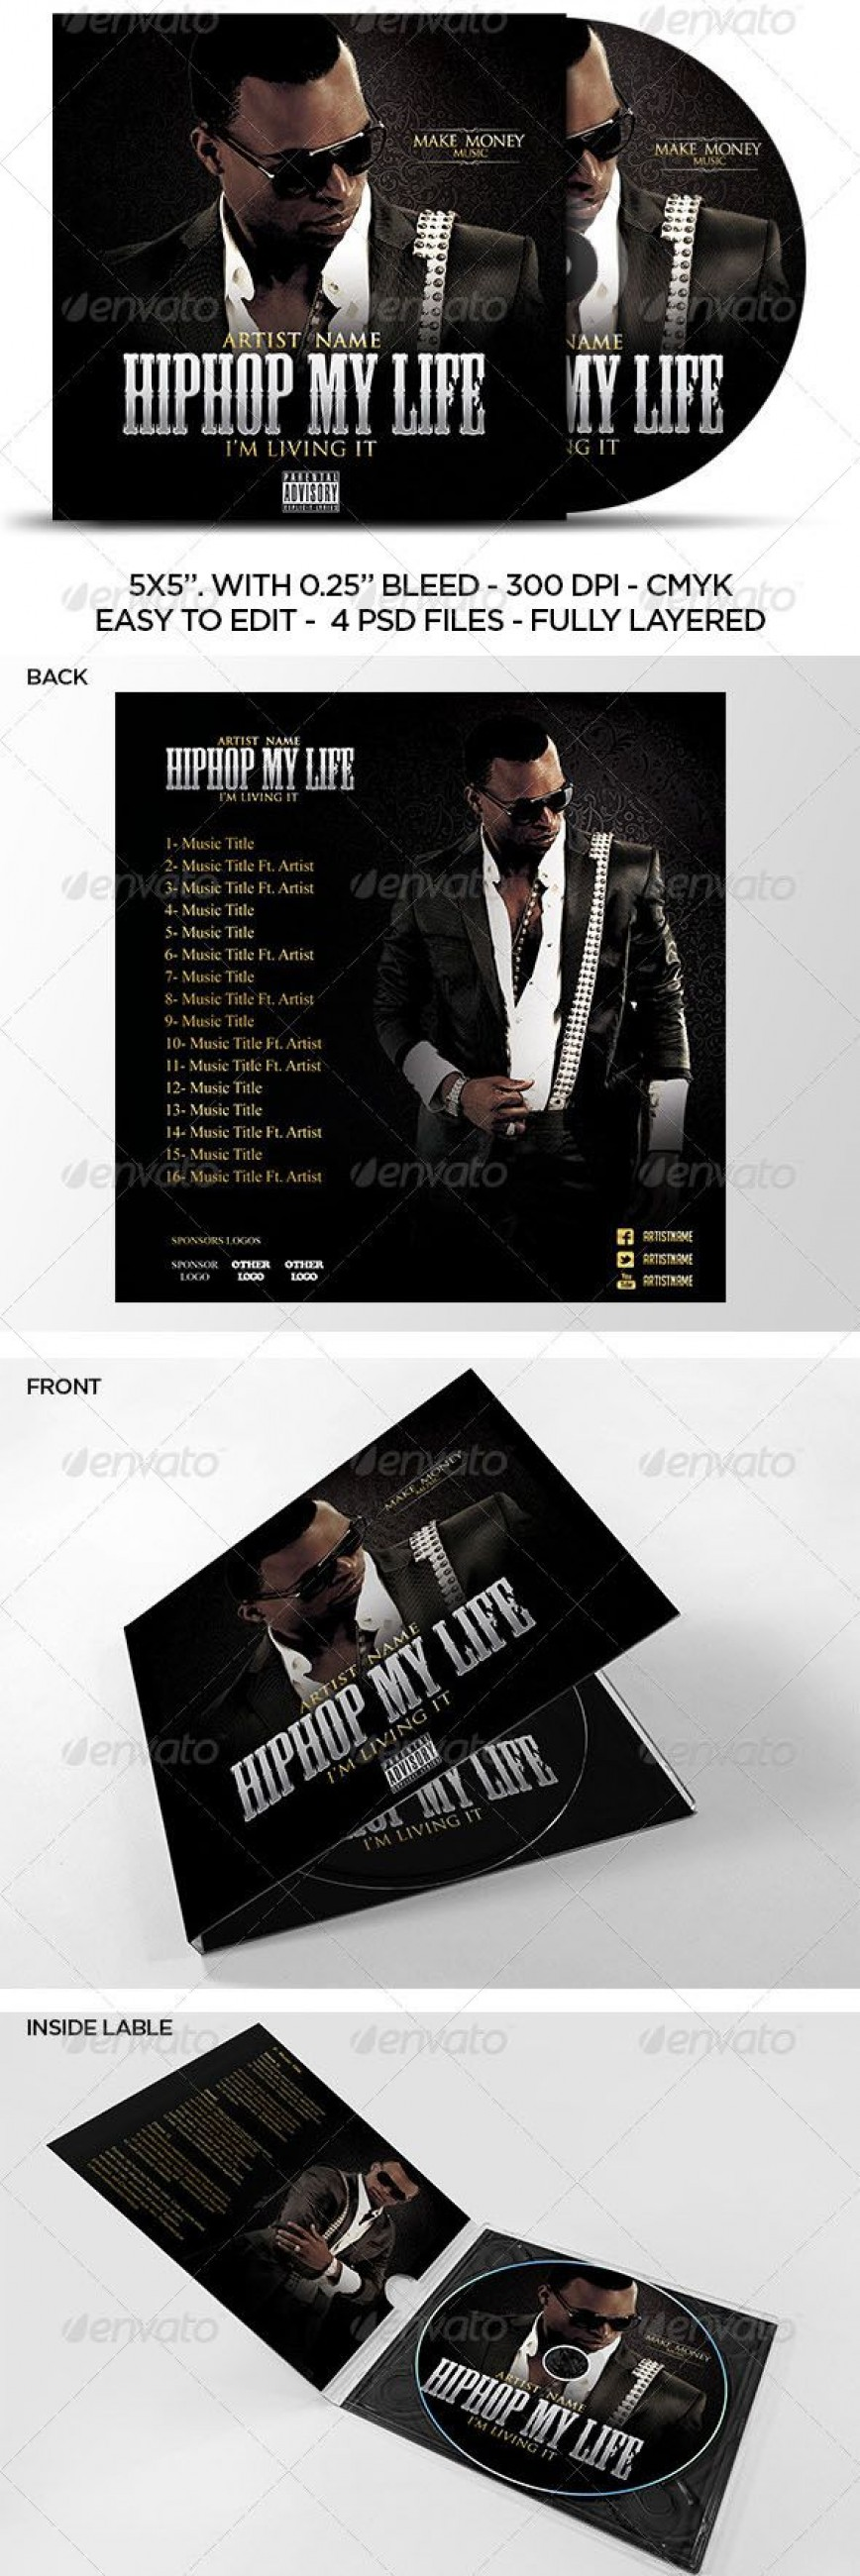 002 Formidable Cd Cover Template Psd Highest Clarity  Label Free Jewel Case Photoshop Download